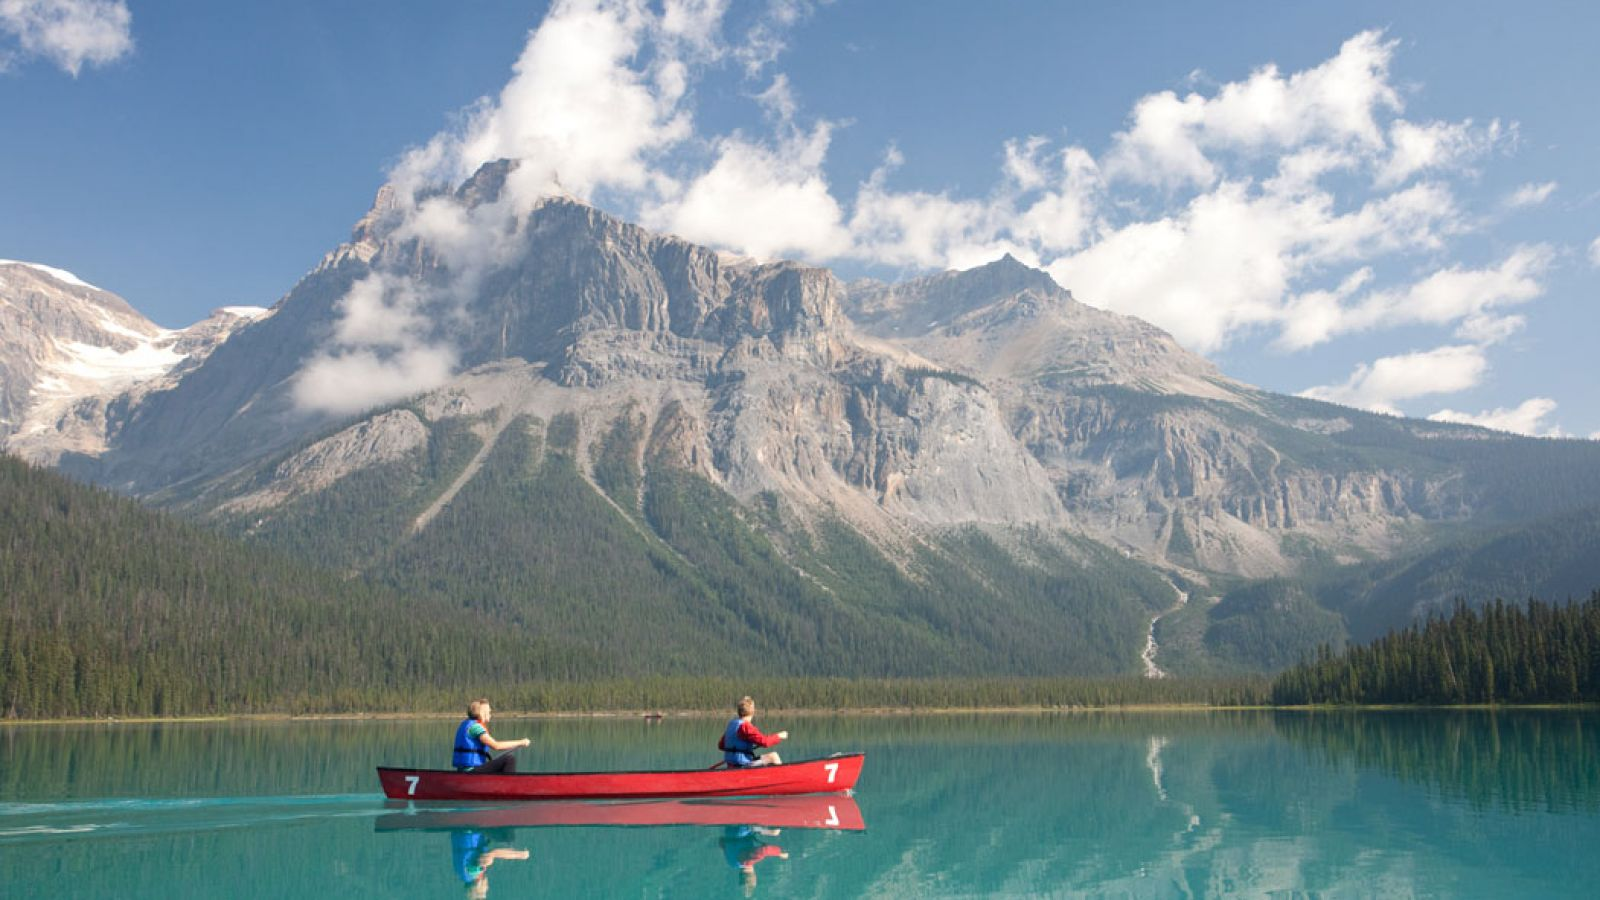 Canoeing Emerald Lake, Yoho National Park